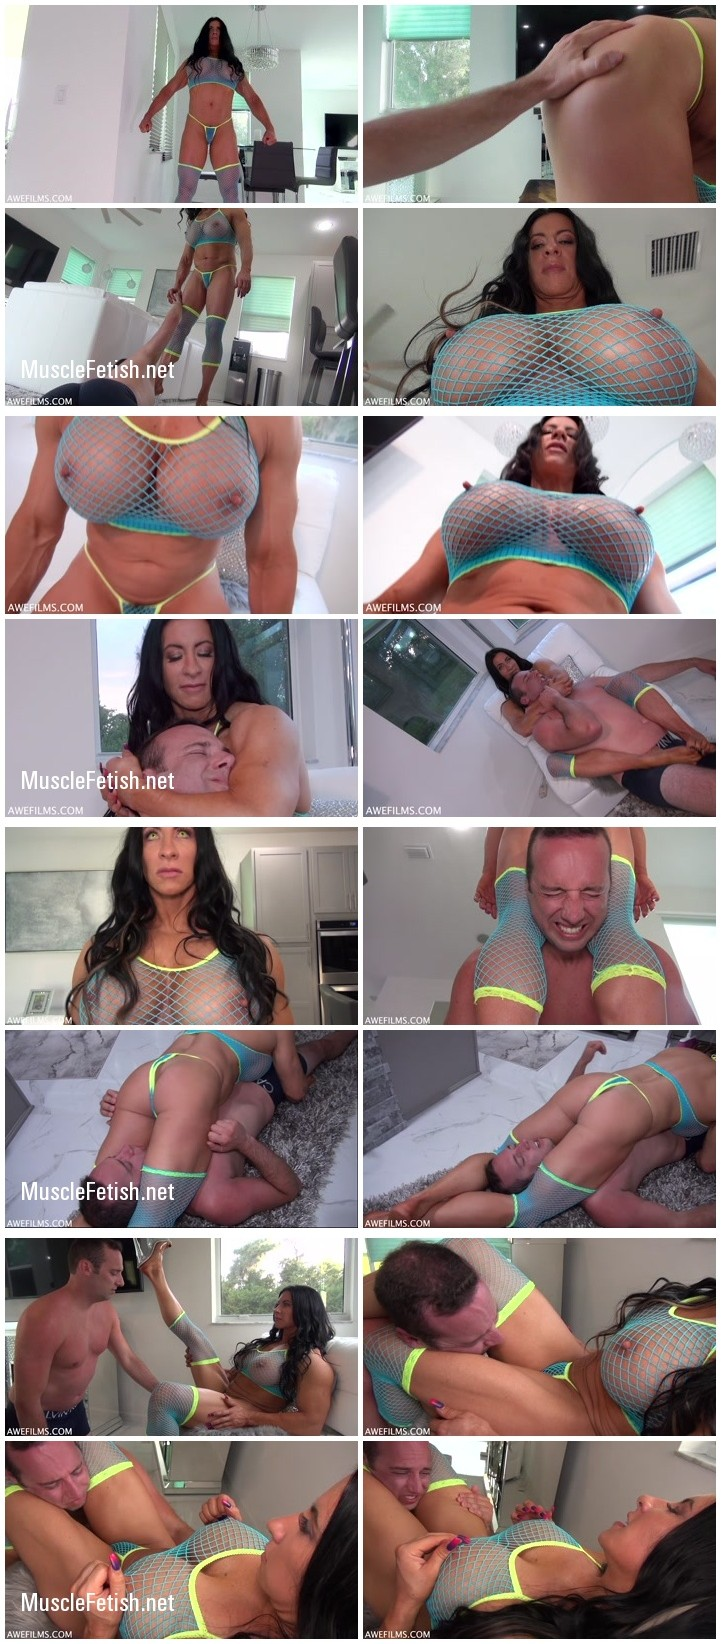 Mistress Angela SexBot from AweFilms - muscle domination